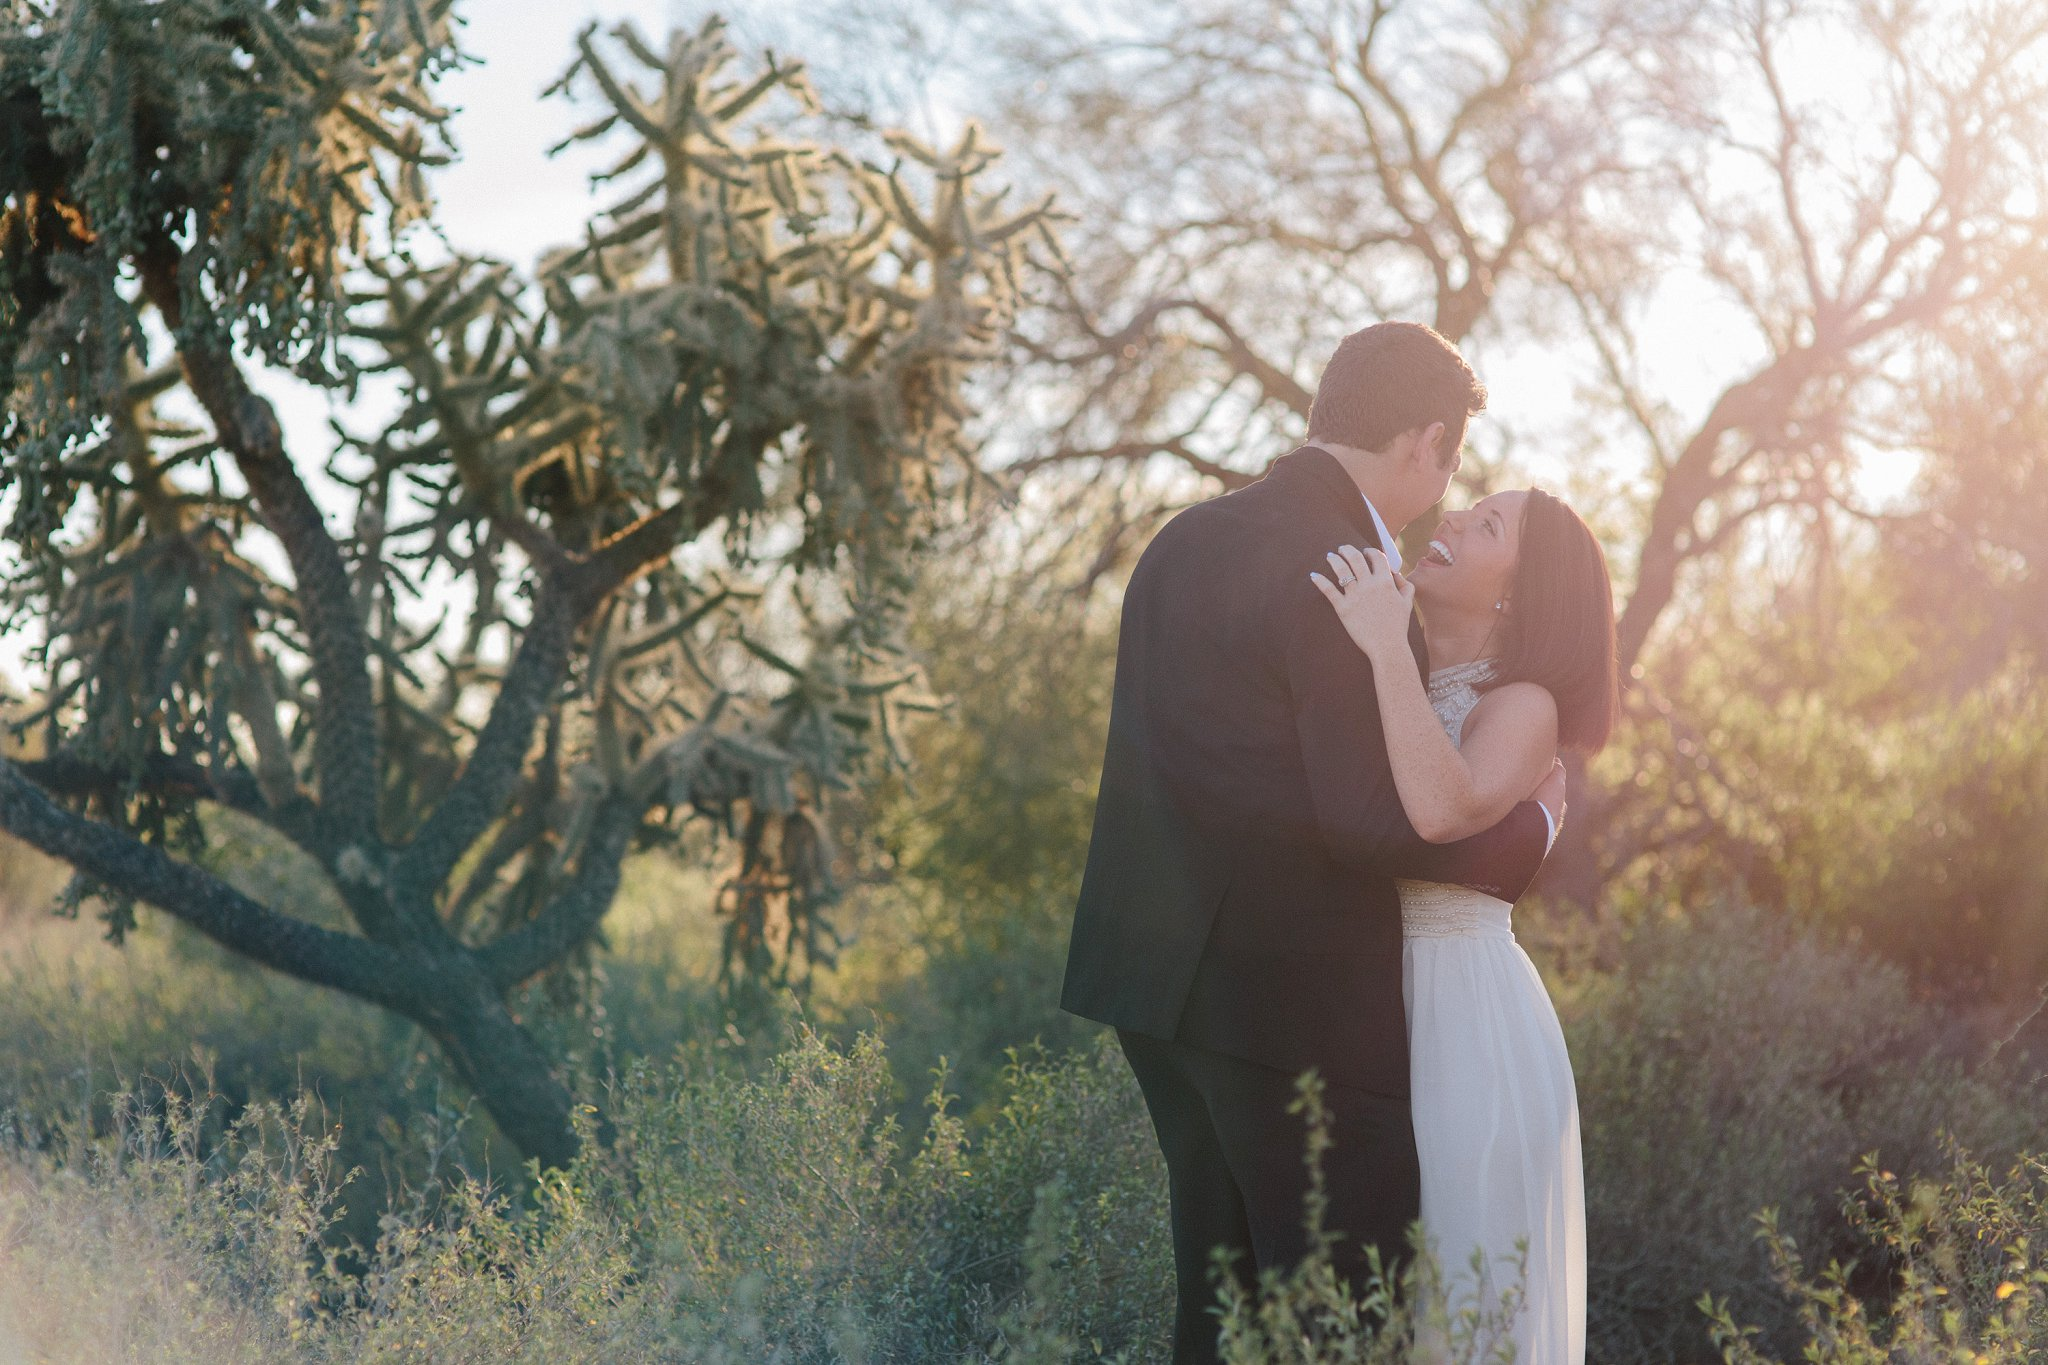 desert wedding anniversary couples portraits